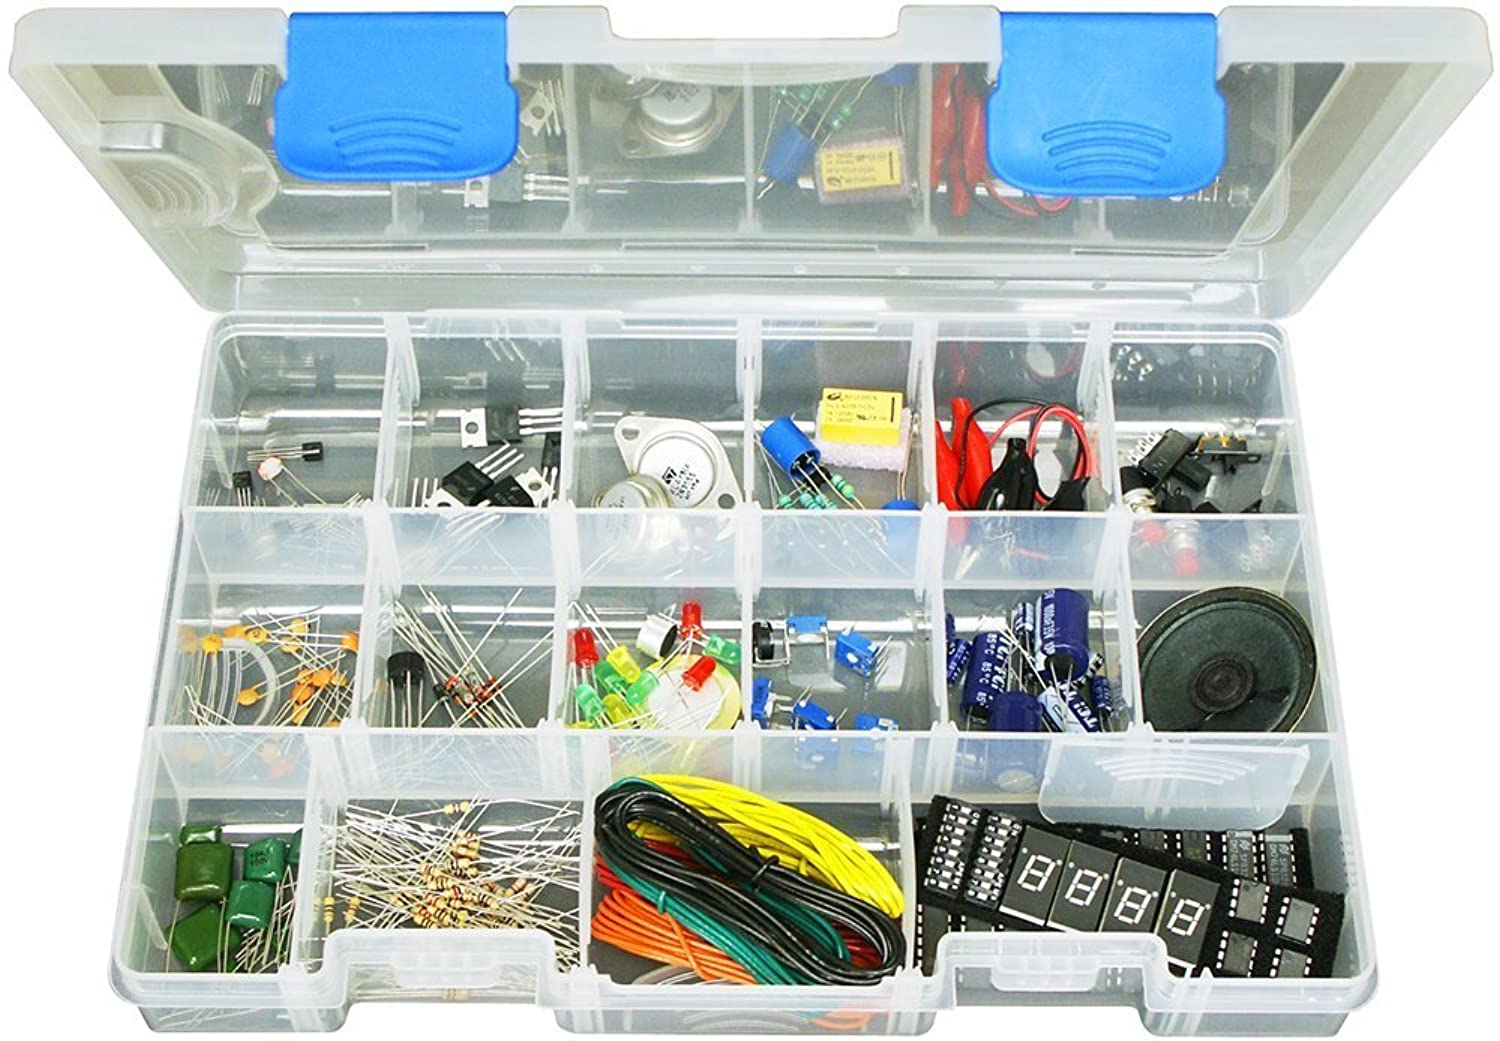 Elenco Component Kit with Storage Case and Assorted Electronic Components [並行輸入品]